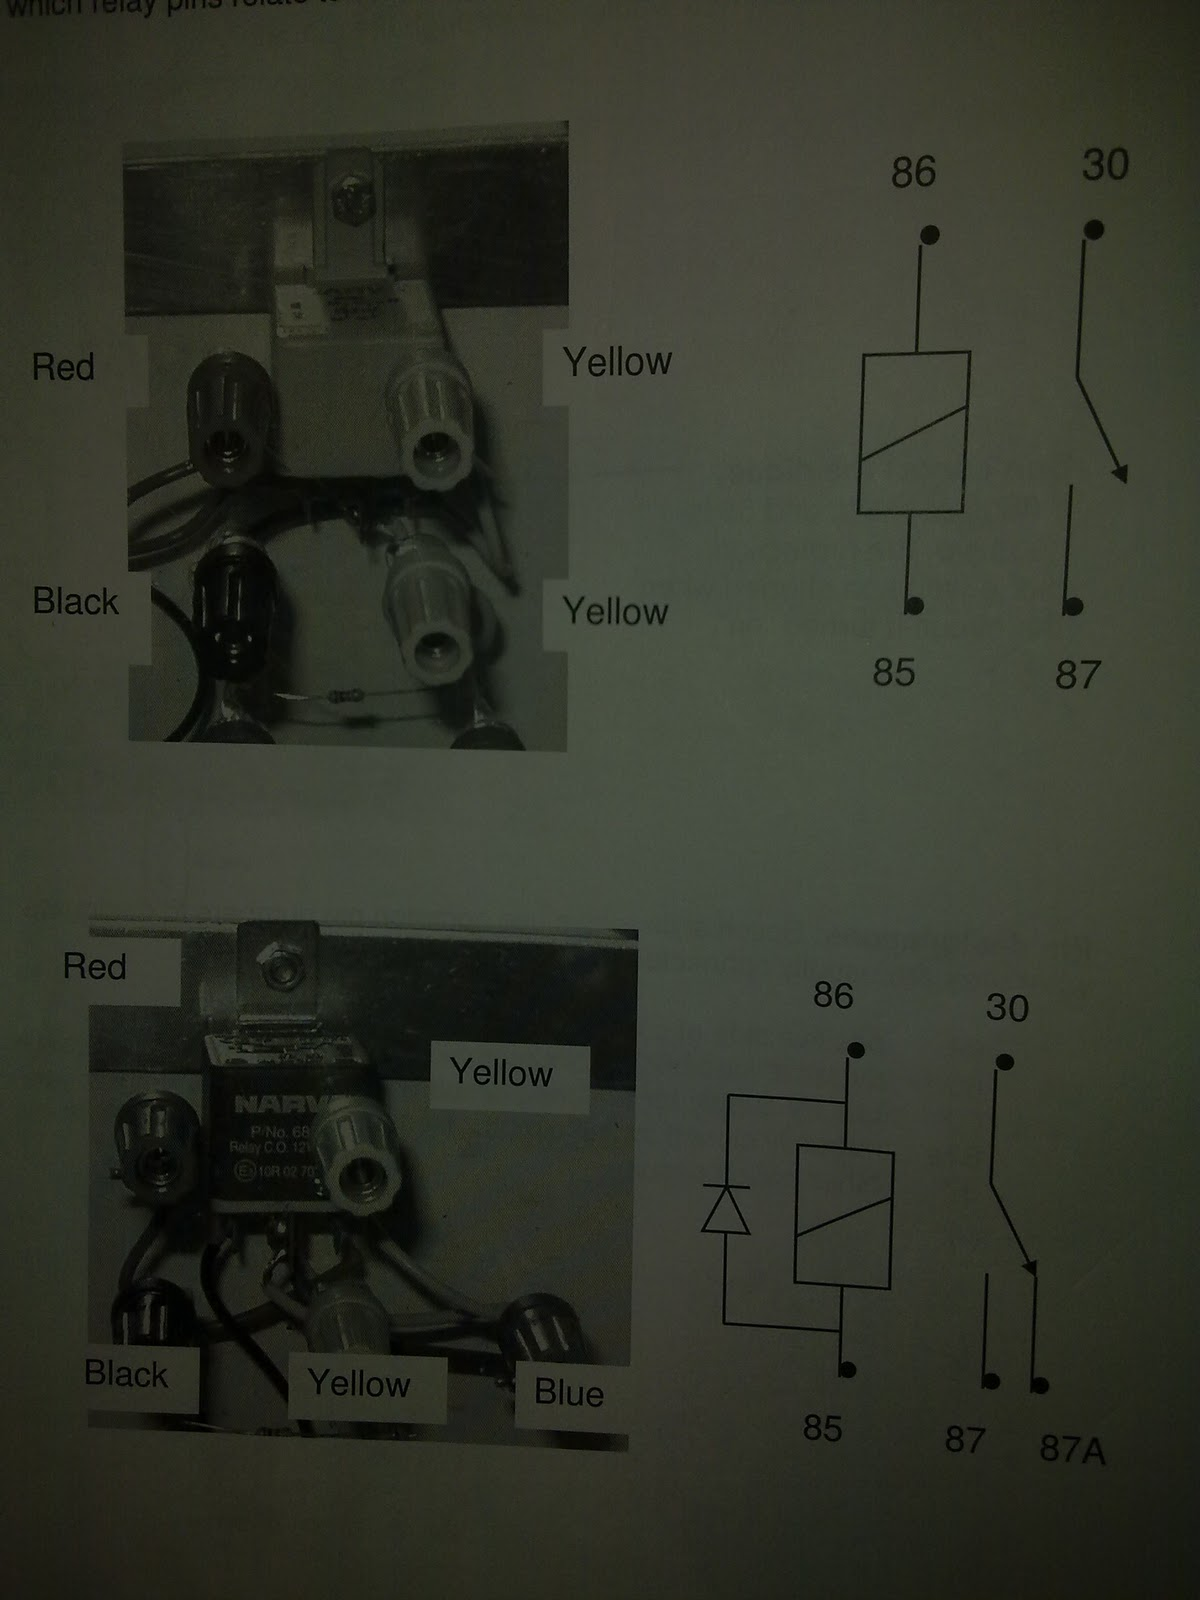 Electrical Current Diagram How Does Electricity Flow By Claire